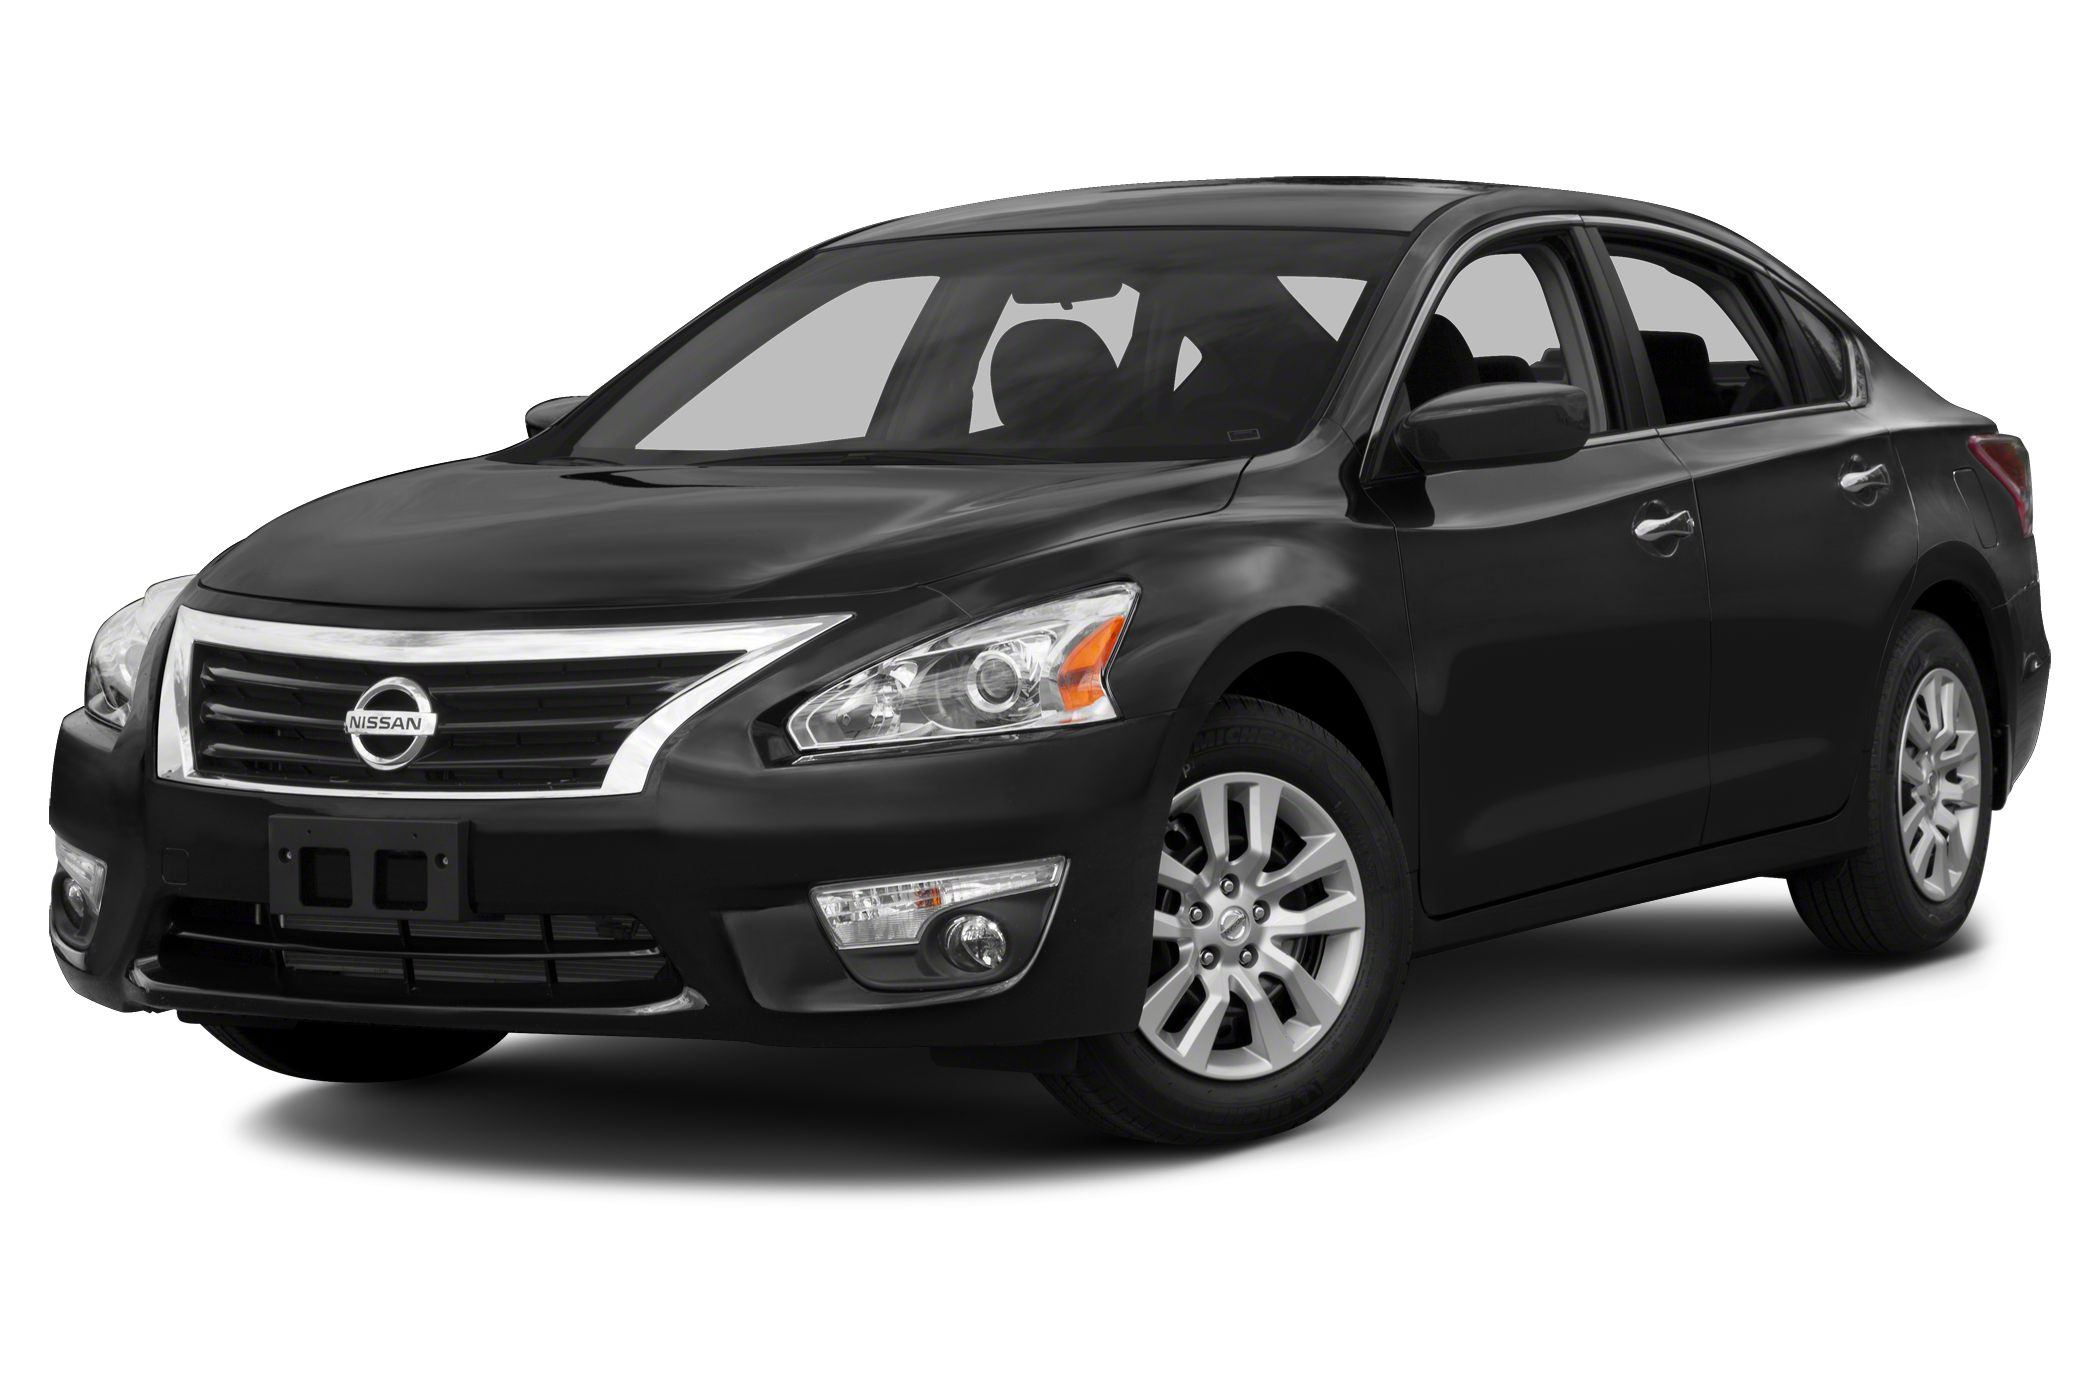 2013 Nissan Altima 2.5 Sedan for sale in Hillsboro for $14,999 with 52,251 miles.